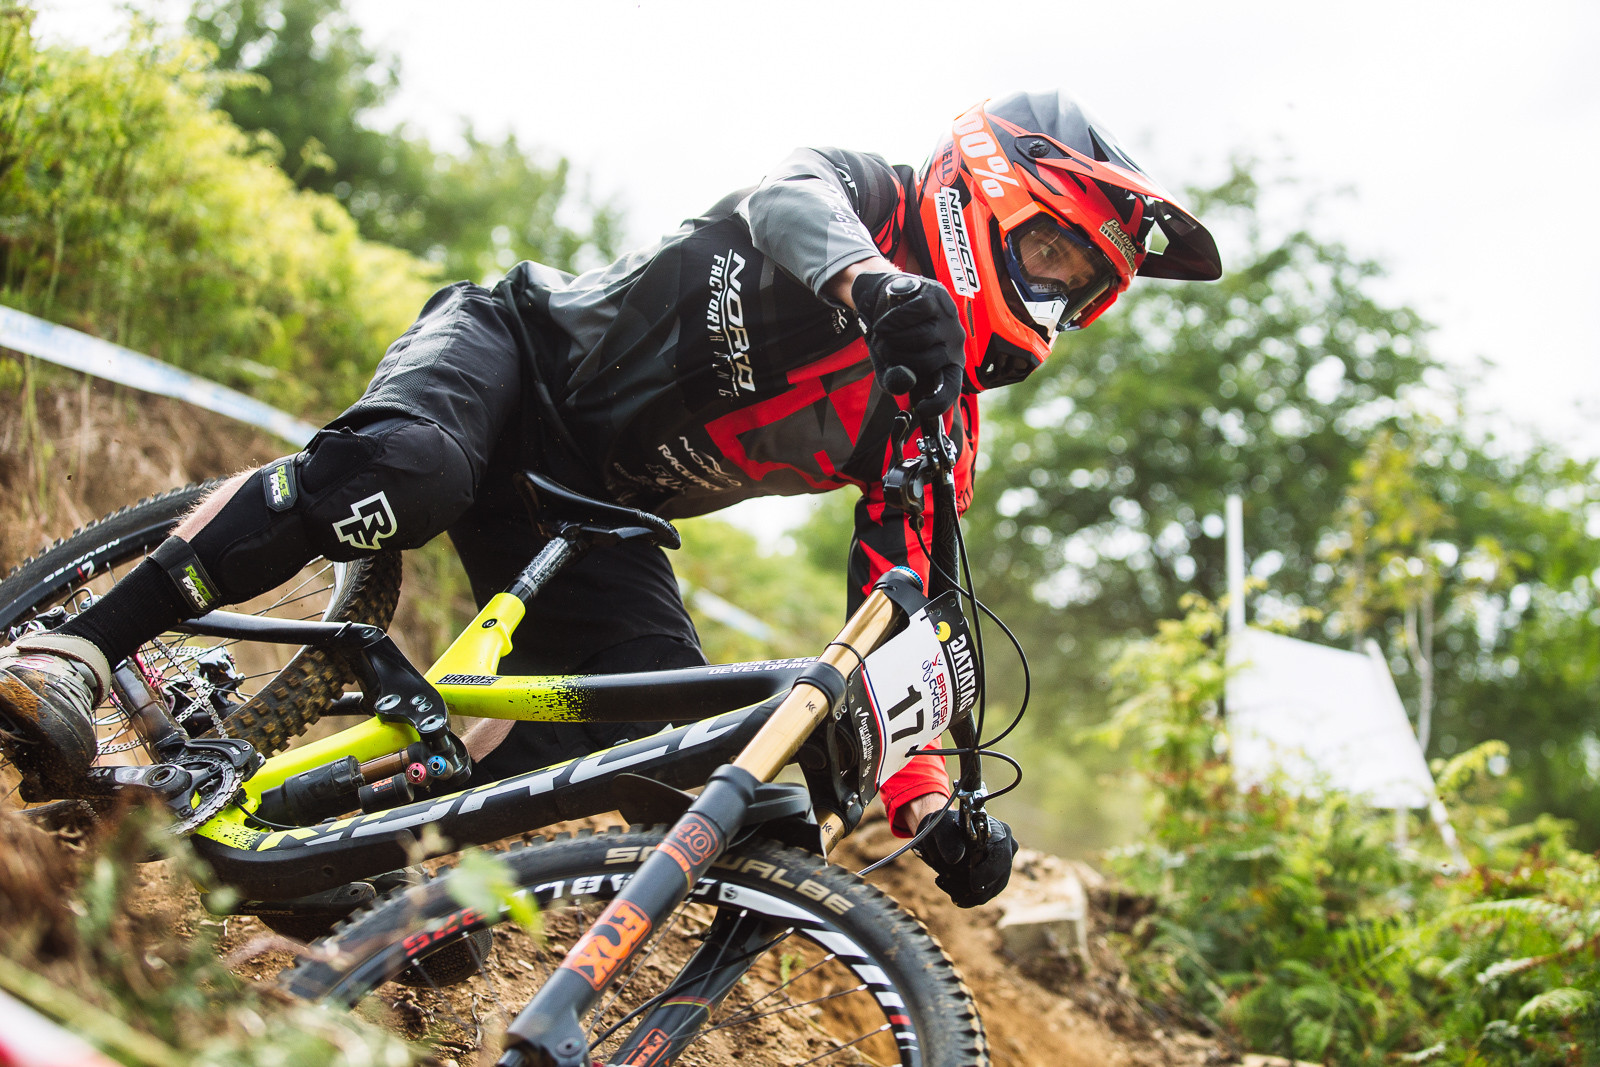 Harry Heath - 2015 British National Champs Downhill - 2015 British National Champs Downhill Photos - Mountain Biking Pictures - Vital MTB